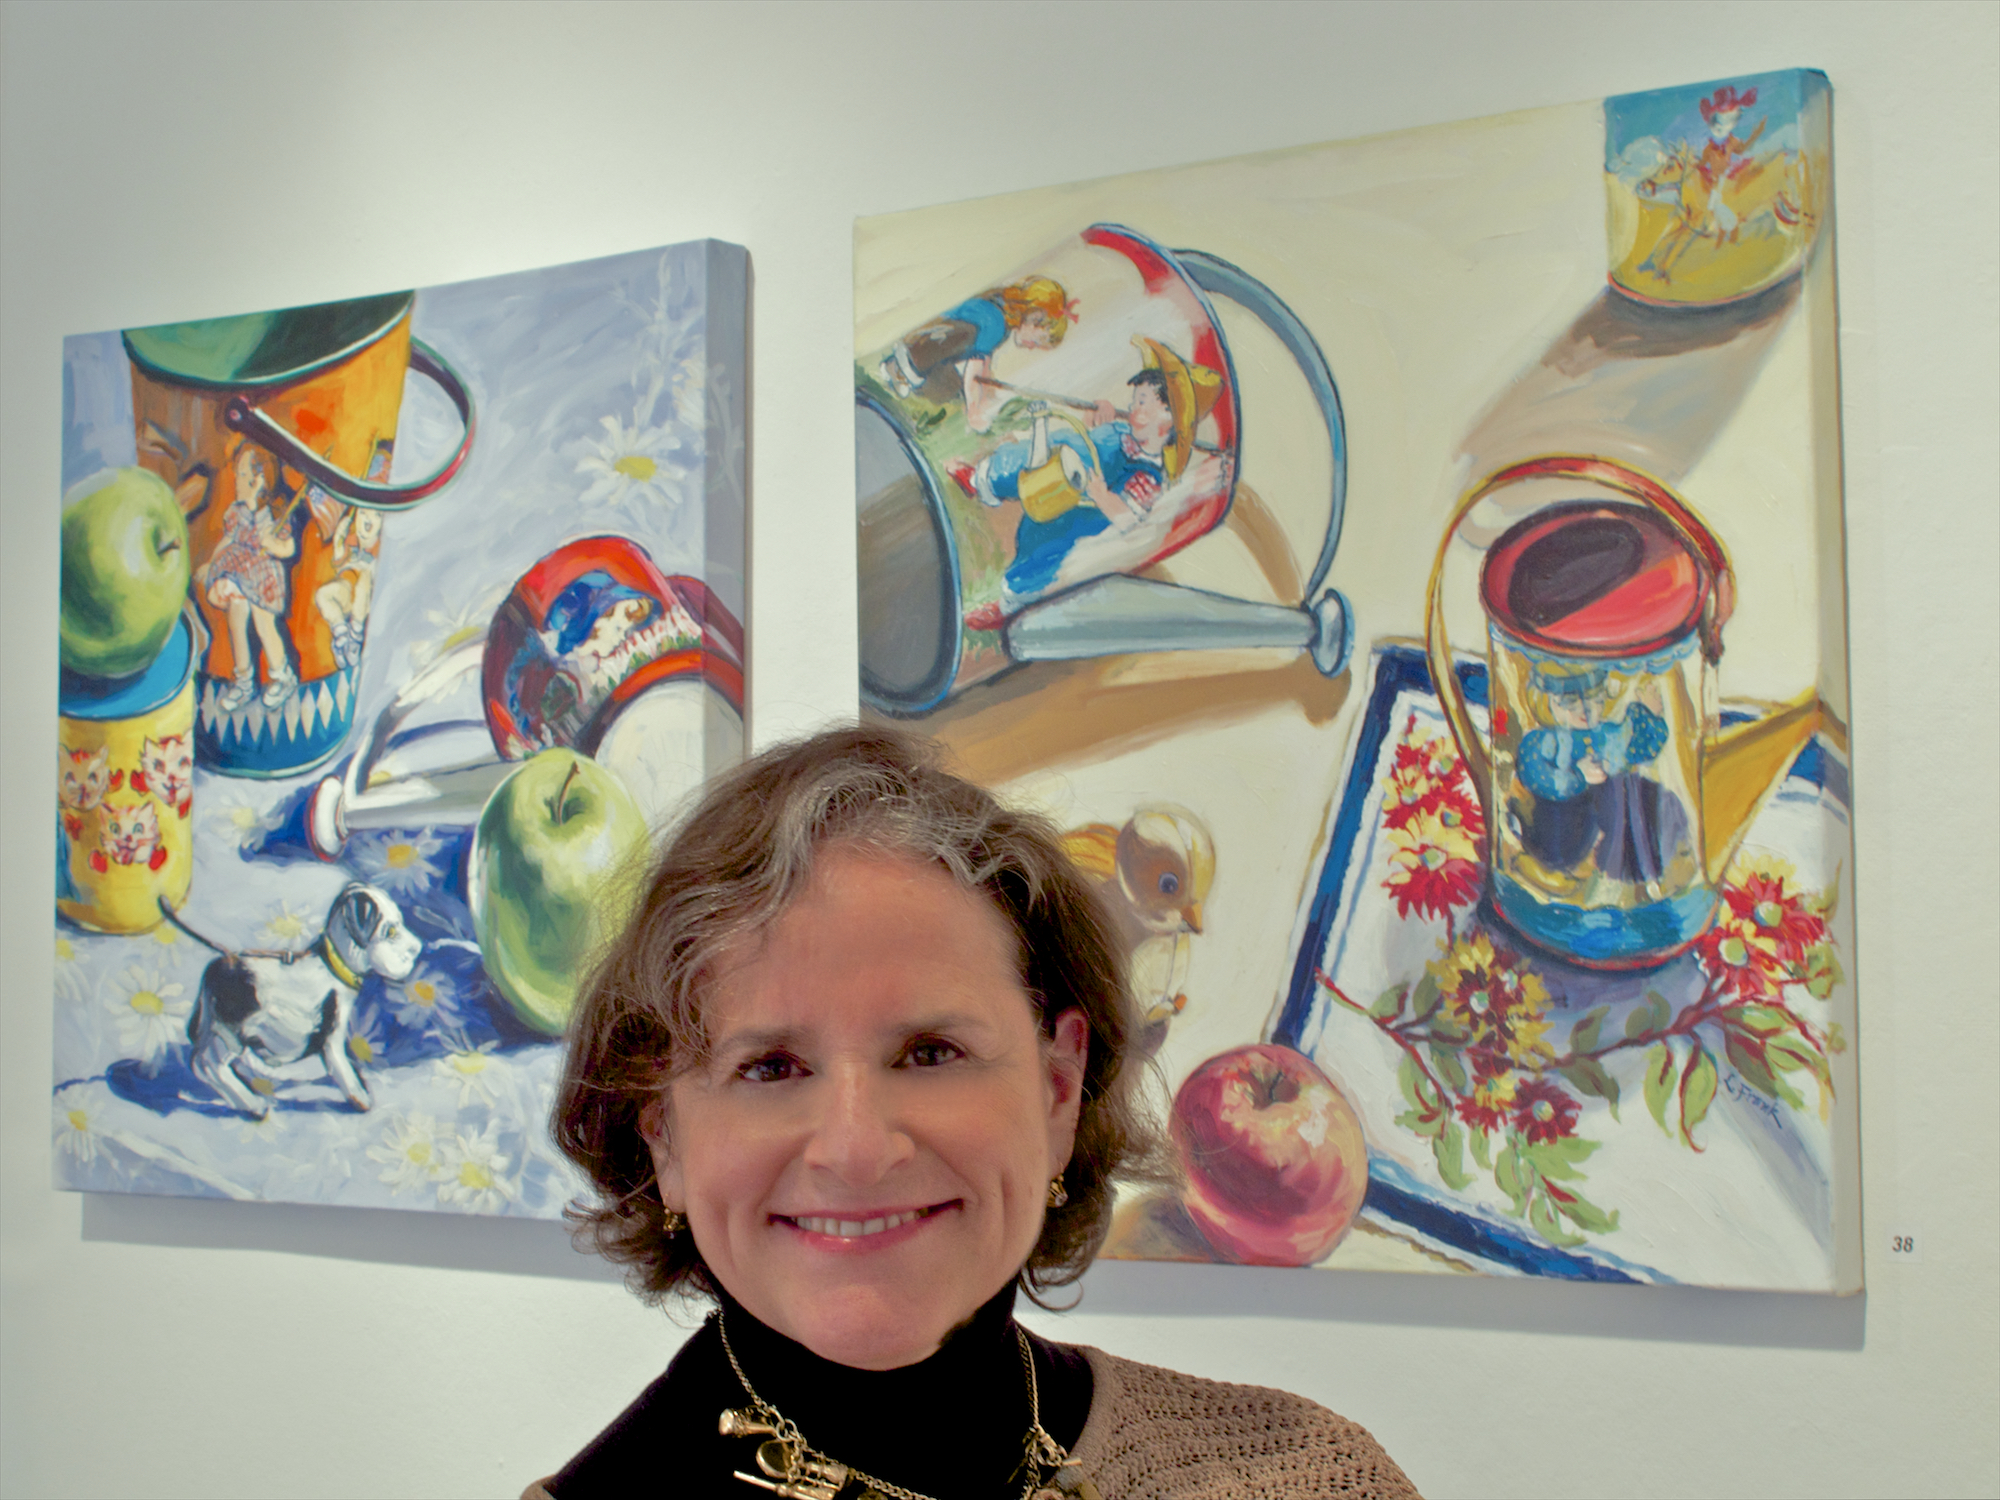 April 2014 - Two of Leona's vintage toy still lifes are accepted into New Haven Paint & Clay's 113th Annual Juried Open Exhibition by juror Douglas Hyland, Director of the New Britain Museum of American Art.